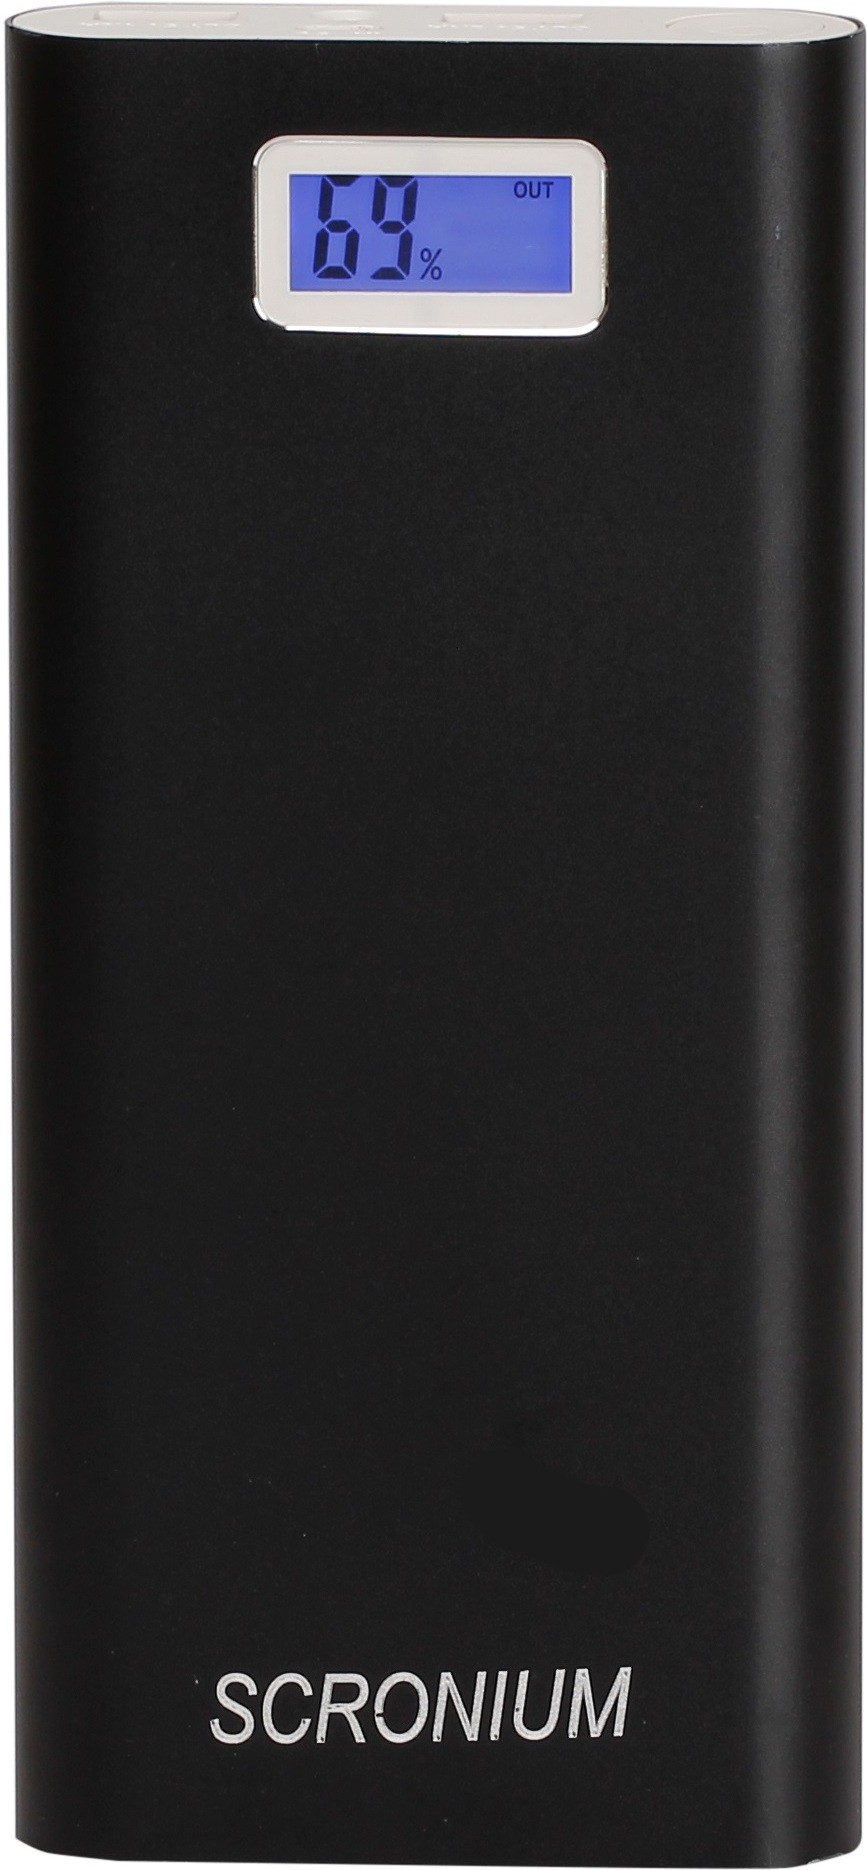 Scronium S-25  with Samsung cells 25000 mAh Power Bank(Black, Lithium-ion)